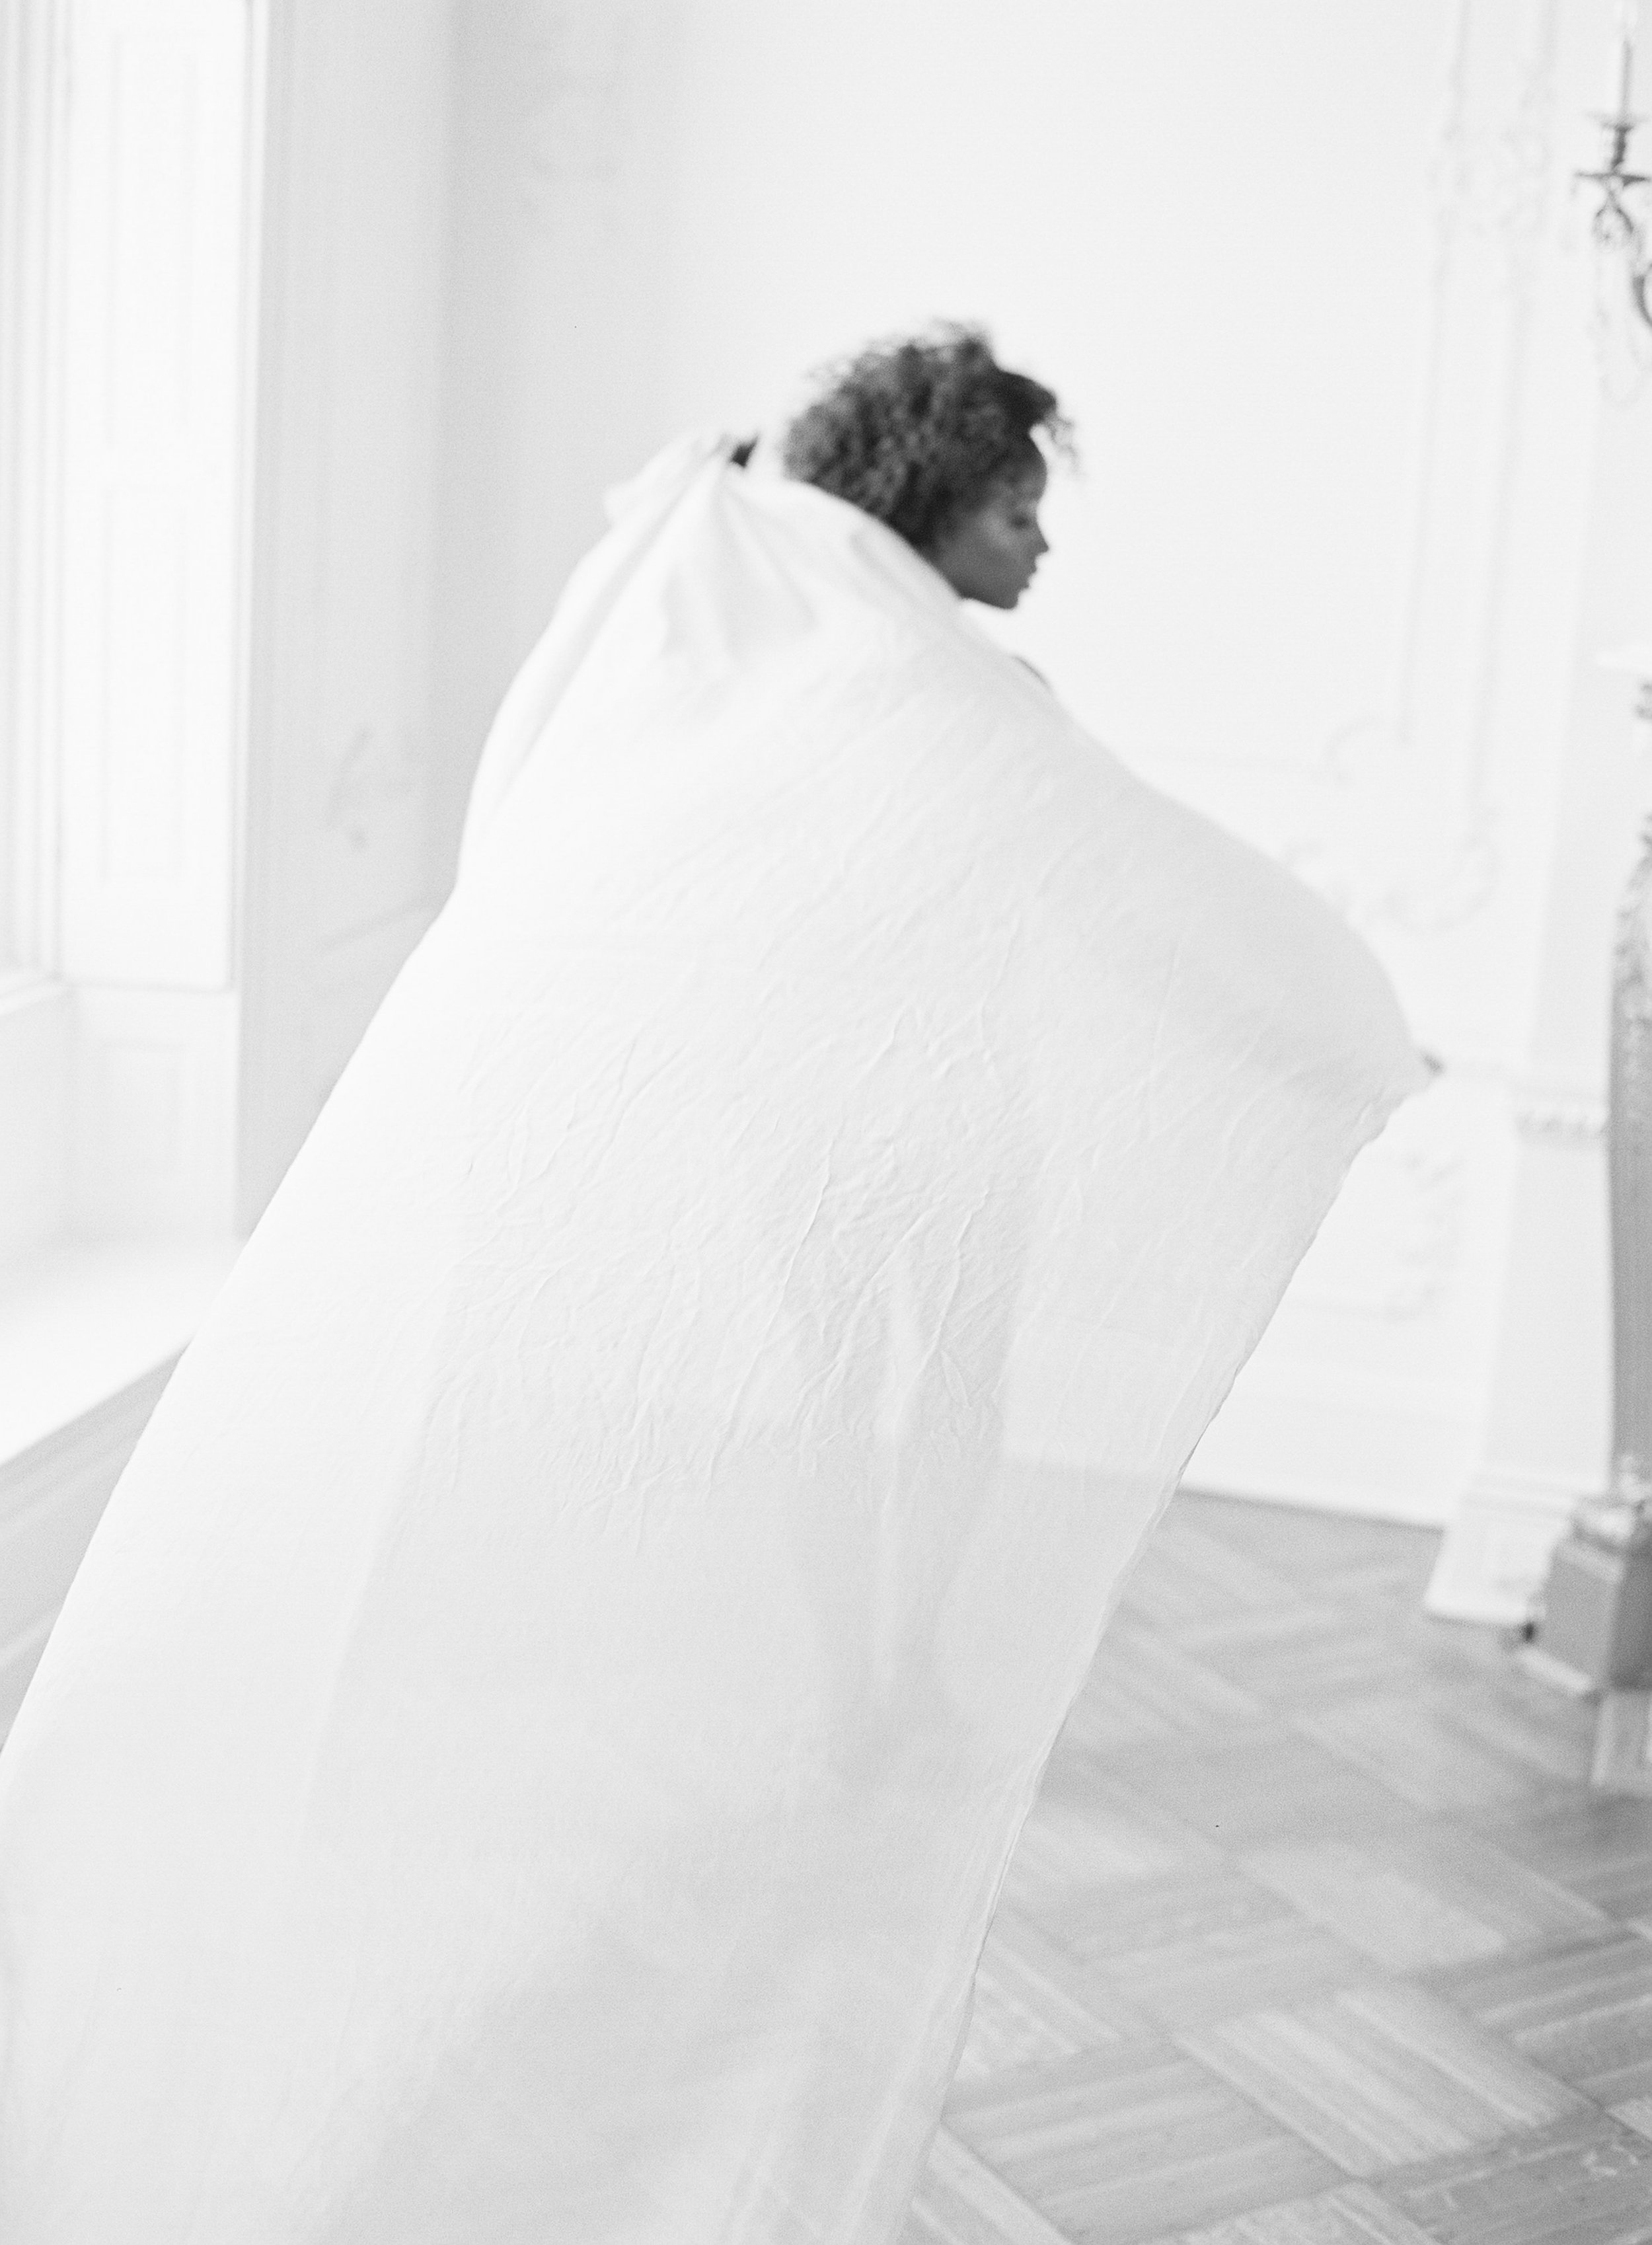 Minimal boudoir photoshoot at the Elephant Restaurant Baltimore with Michael and Carina Photography and fine art luxury wedding planner and stylist East Made Event Company-0013.jpg